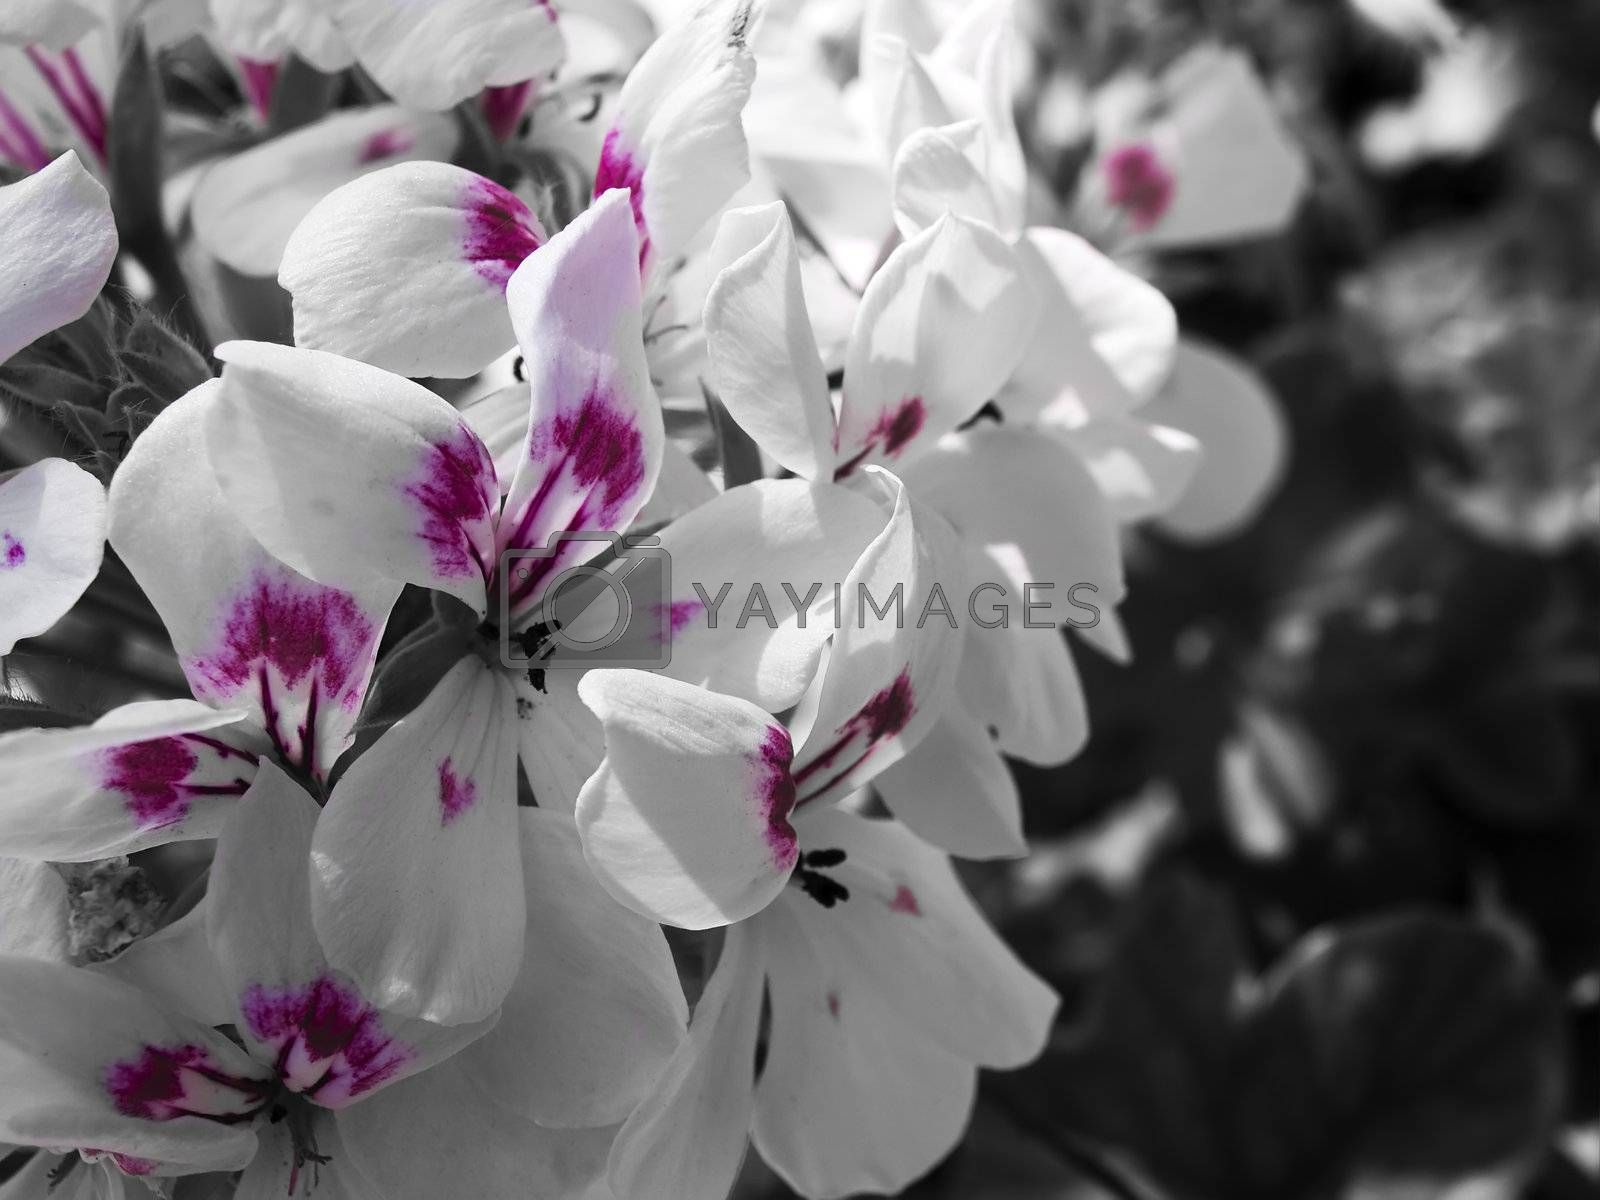 White flowers speckled with deep red and vio;et ideal for romantic backdrops